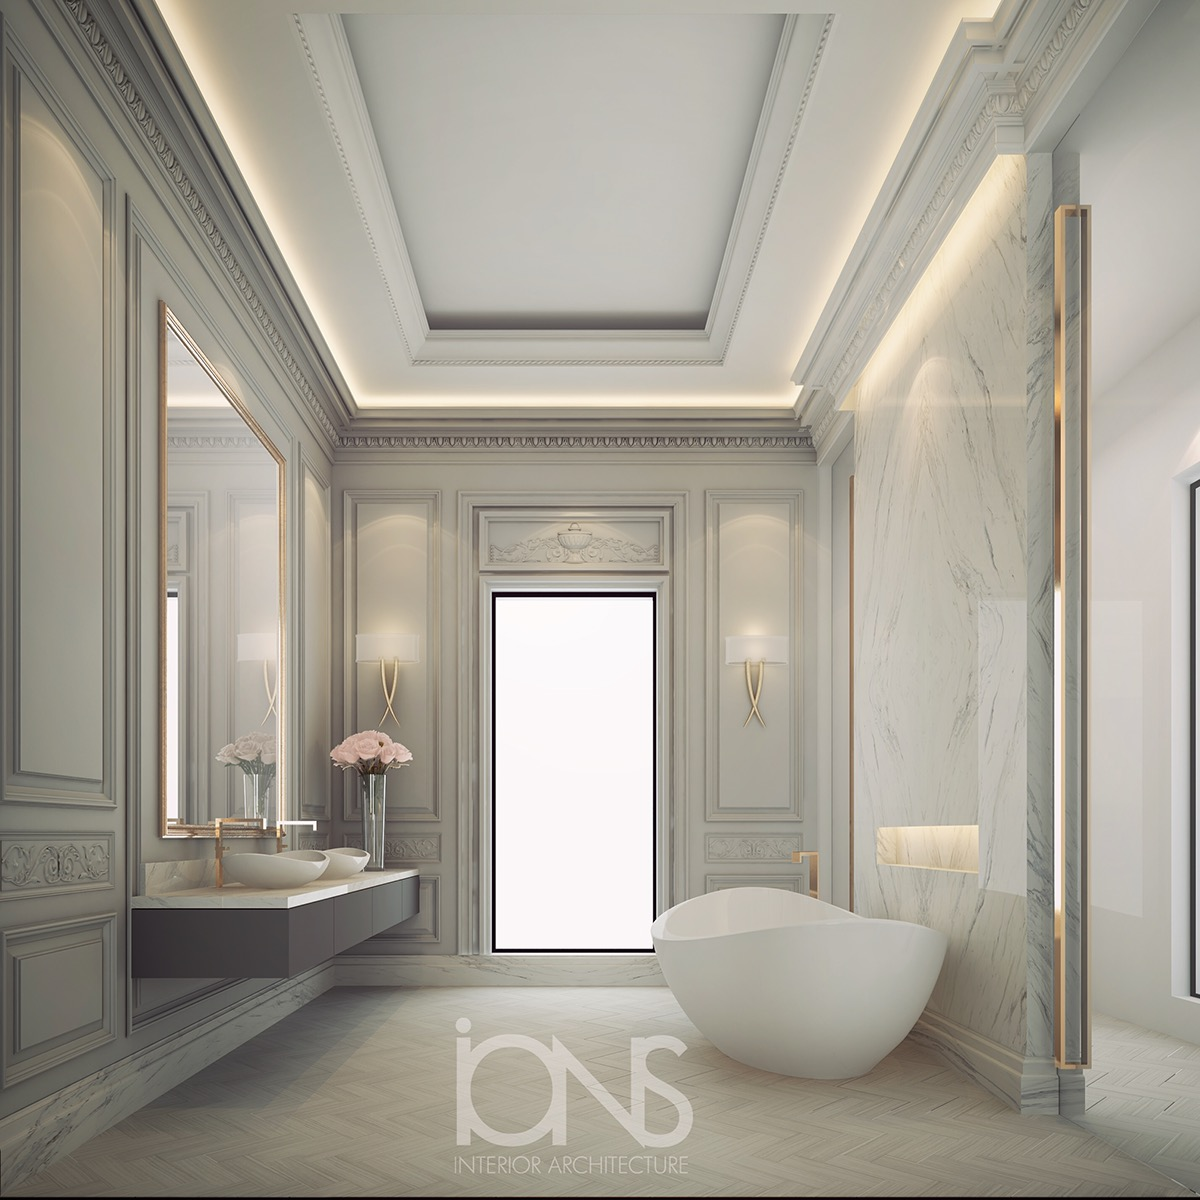 Minimalist Bathroom Design With Interesting Modern Appeal And Splendor Of  Classic Charm For A Private Palace In Dubai. The Functional And Comfortable  Space ...